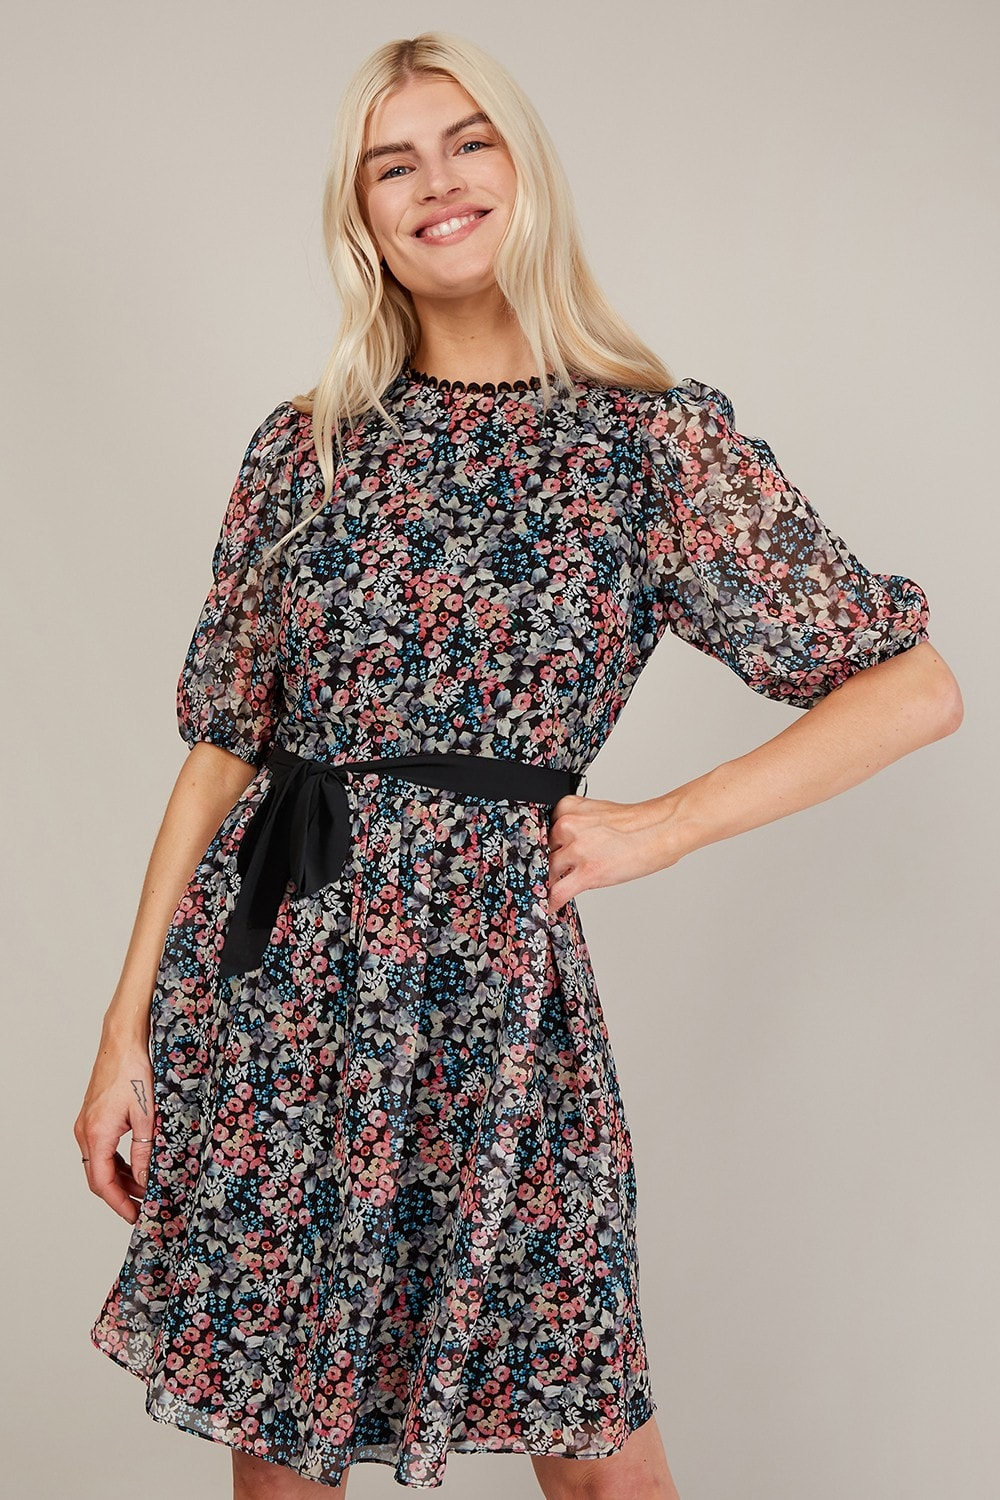 Trendyol Check Puff Sleeve Wrap Dress - Clothing from